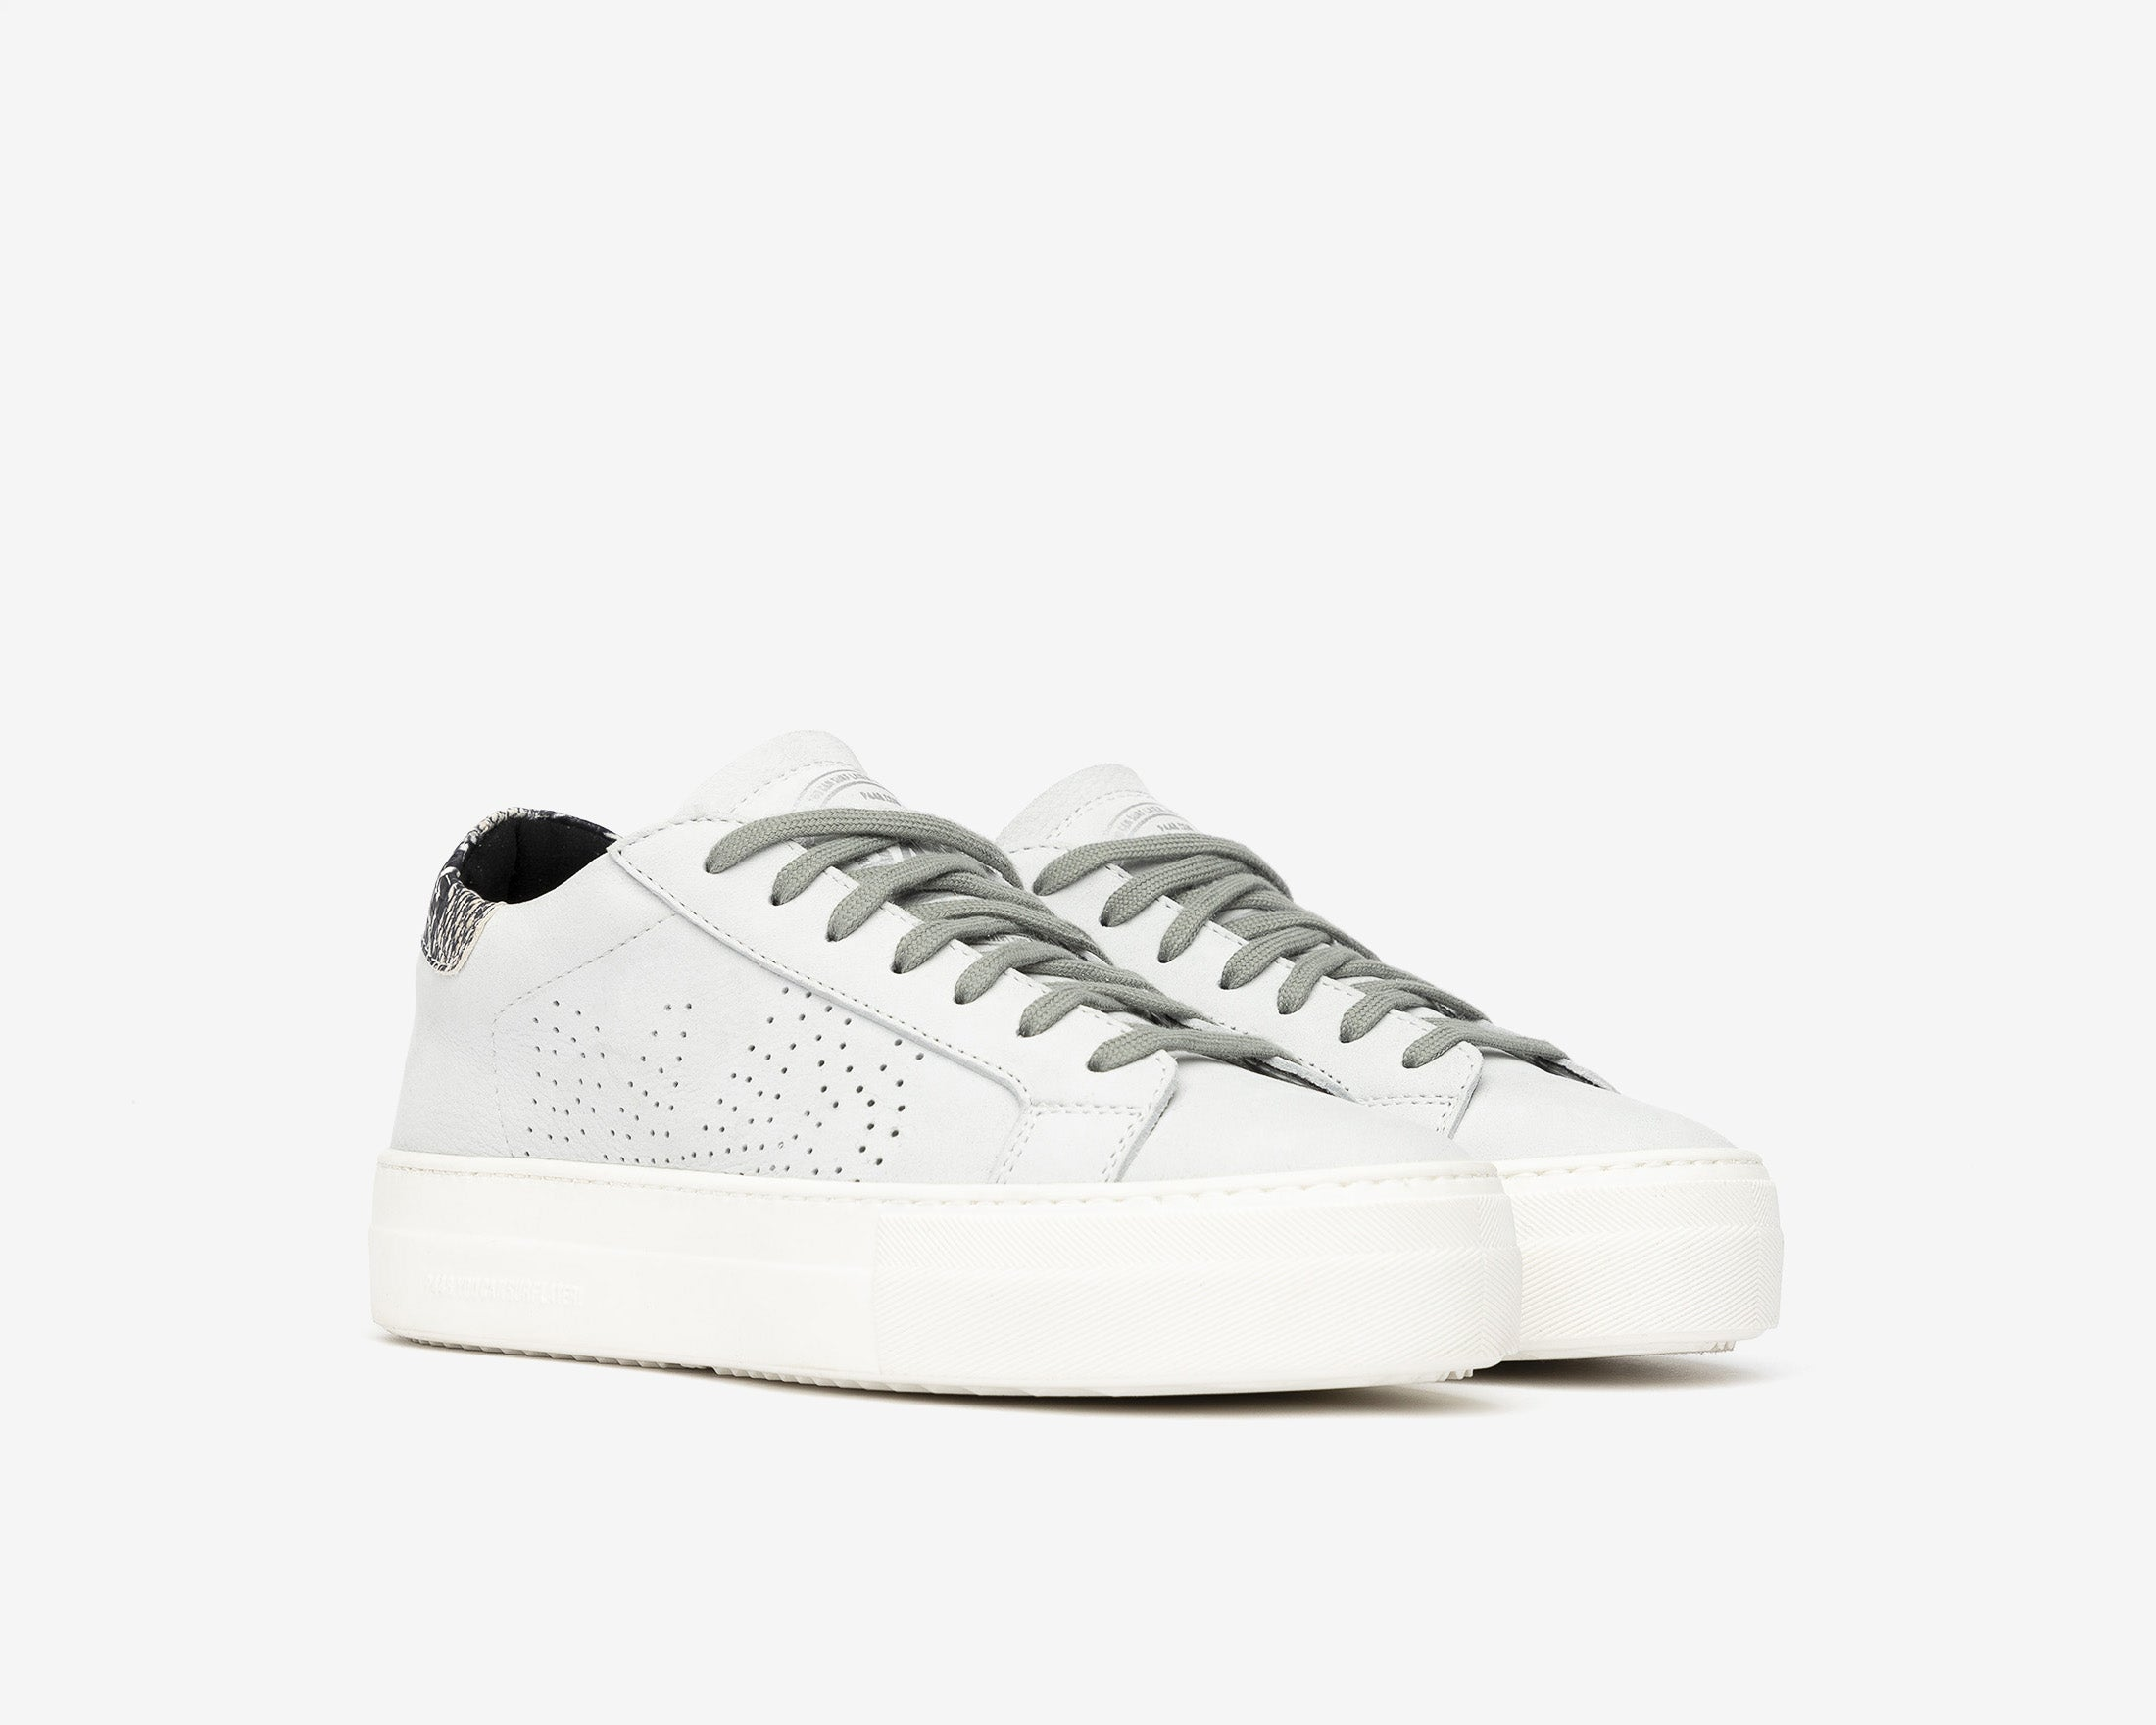 Thea Platform Sneaker in White/Twister Python - Side